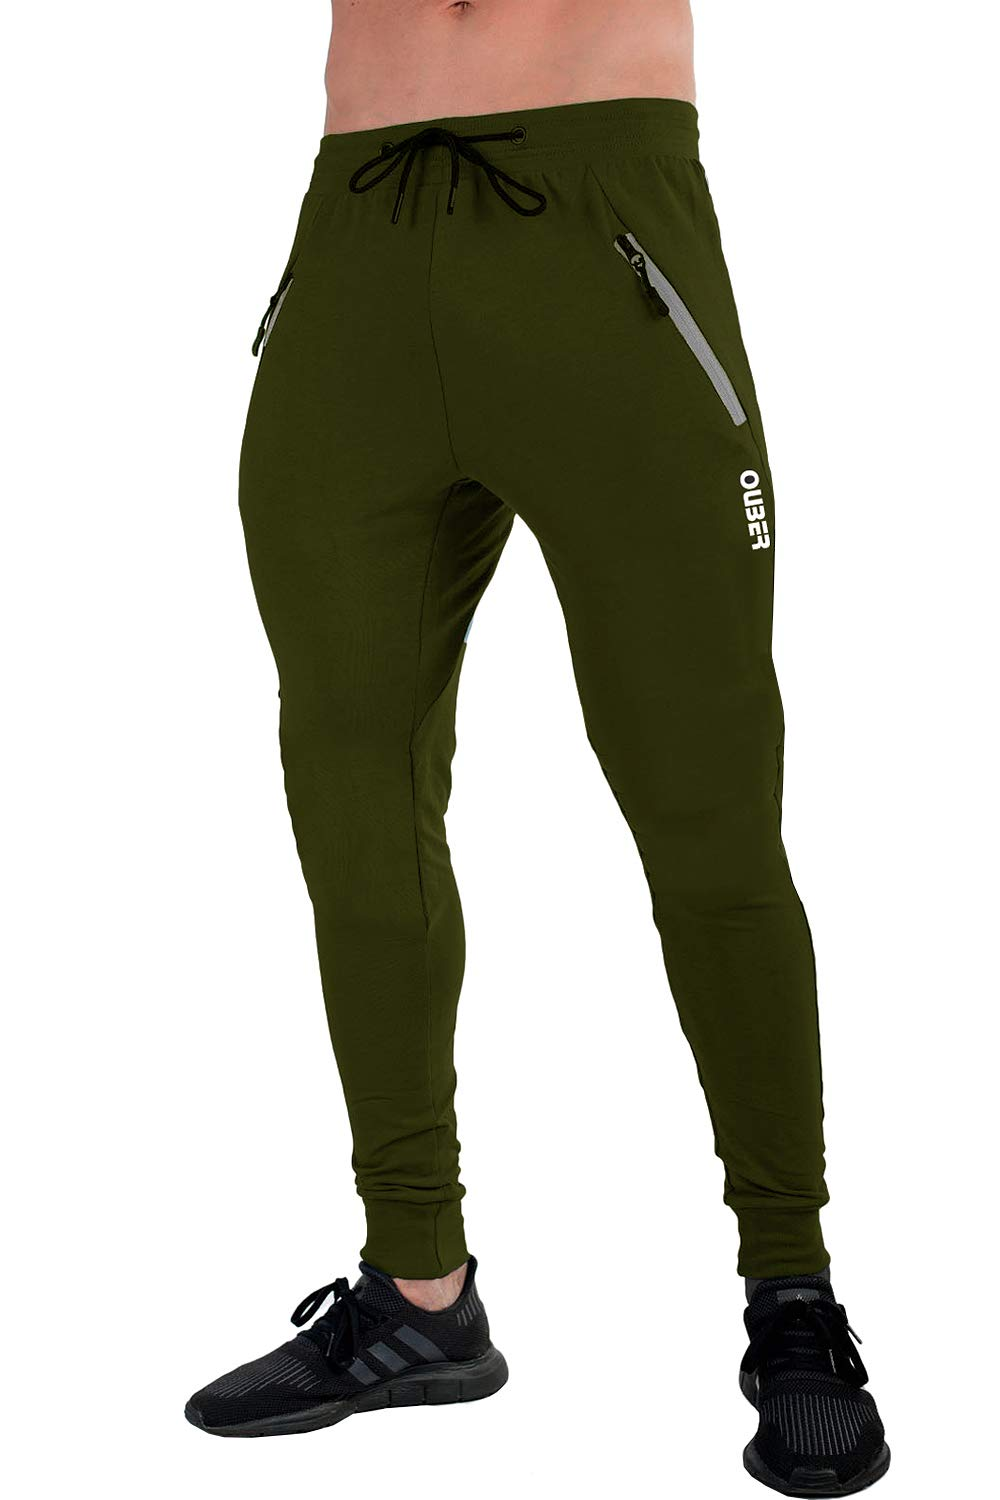 Ouber Men's Slim Fit Joggers Workout Sports Fleece Sweatpants for Gym Training (S, ArmyGreen)